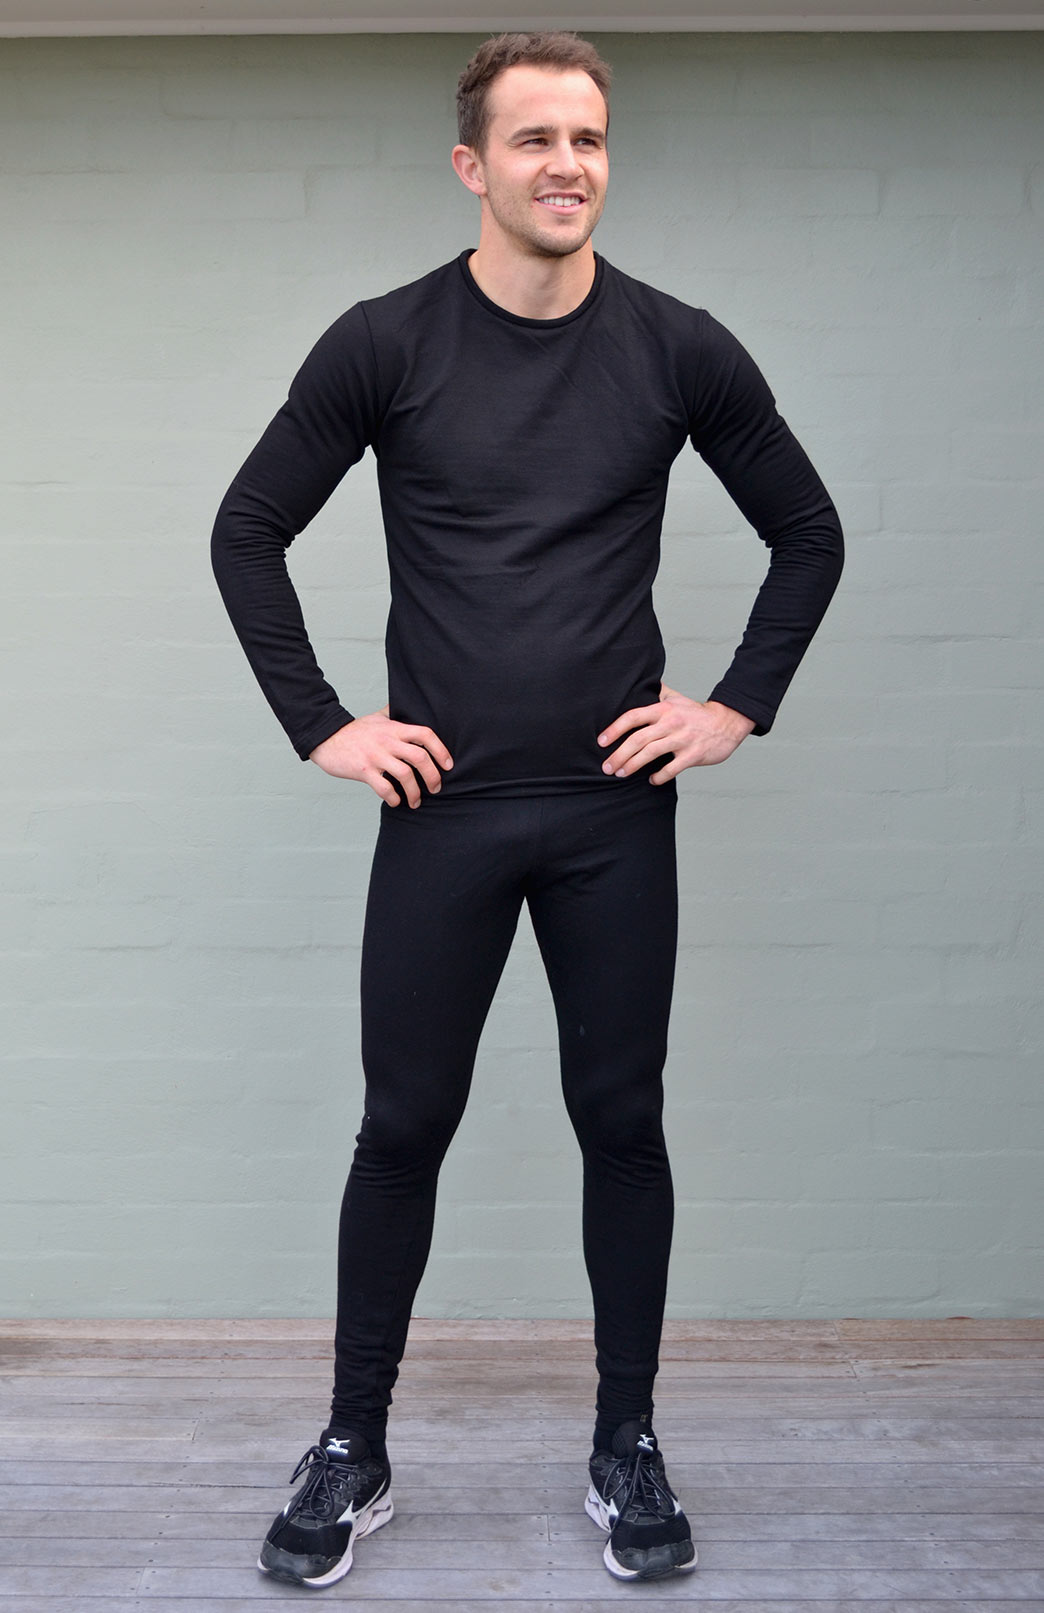 Leggings - 210g - Mens Black midweight Superfine Merino Wool Thermal Leggings - Smitten Merino Tasmania Australia